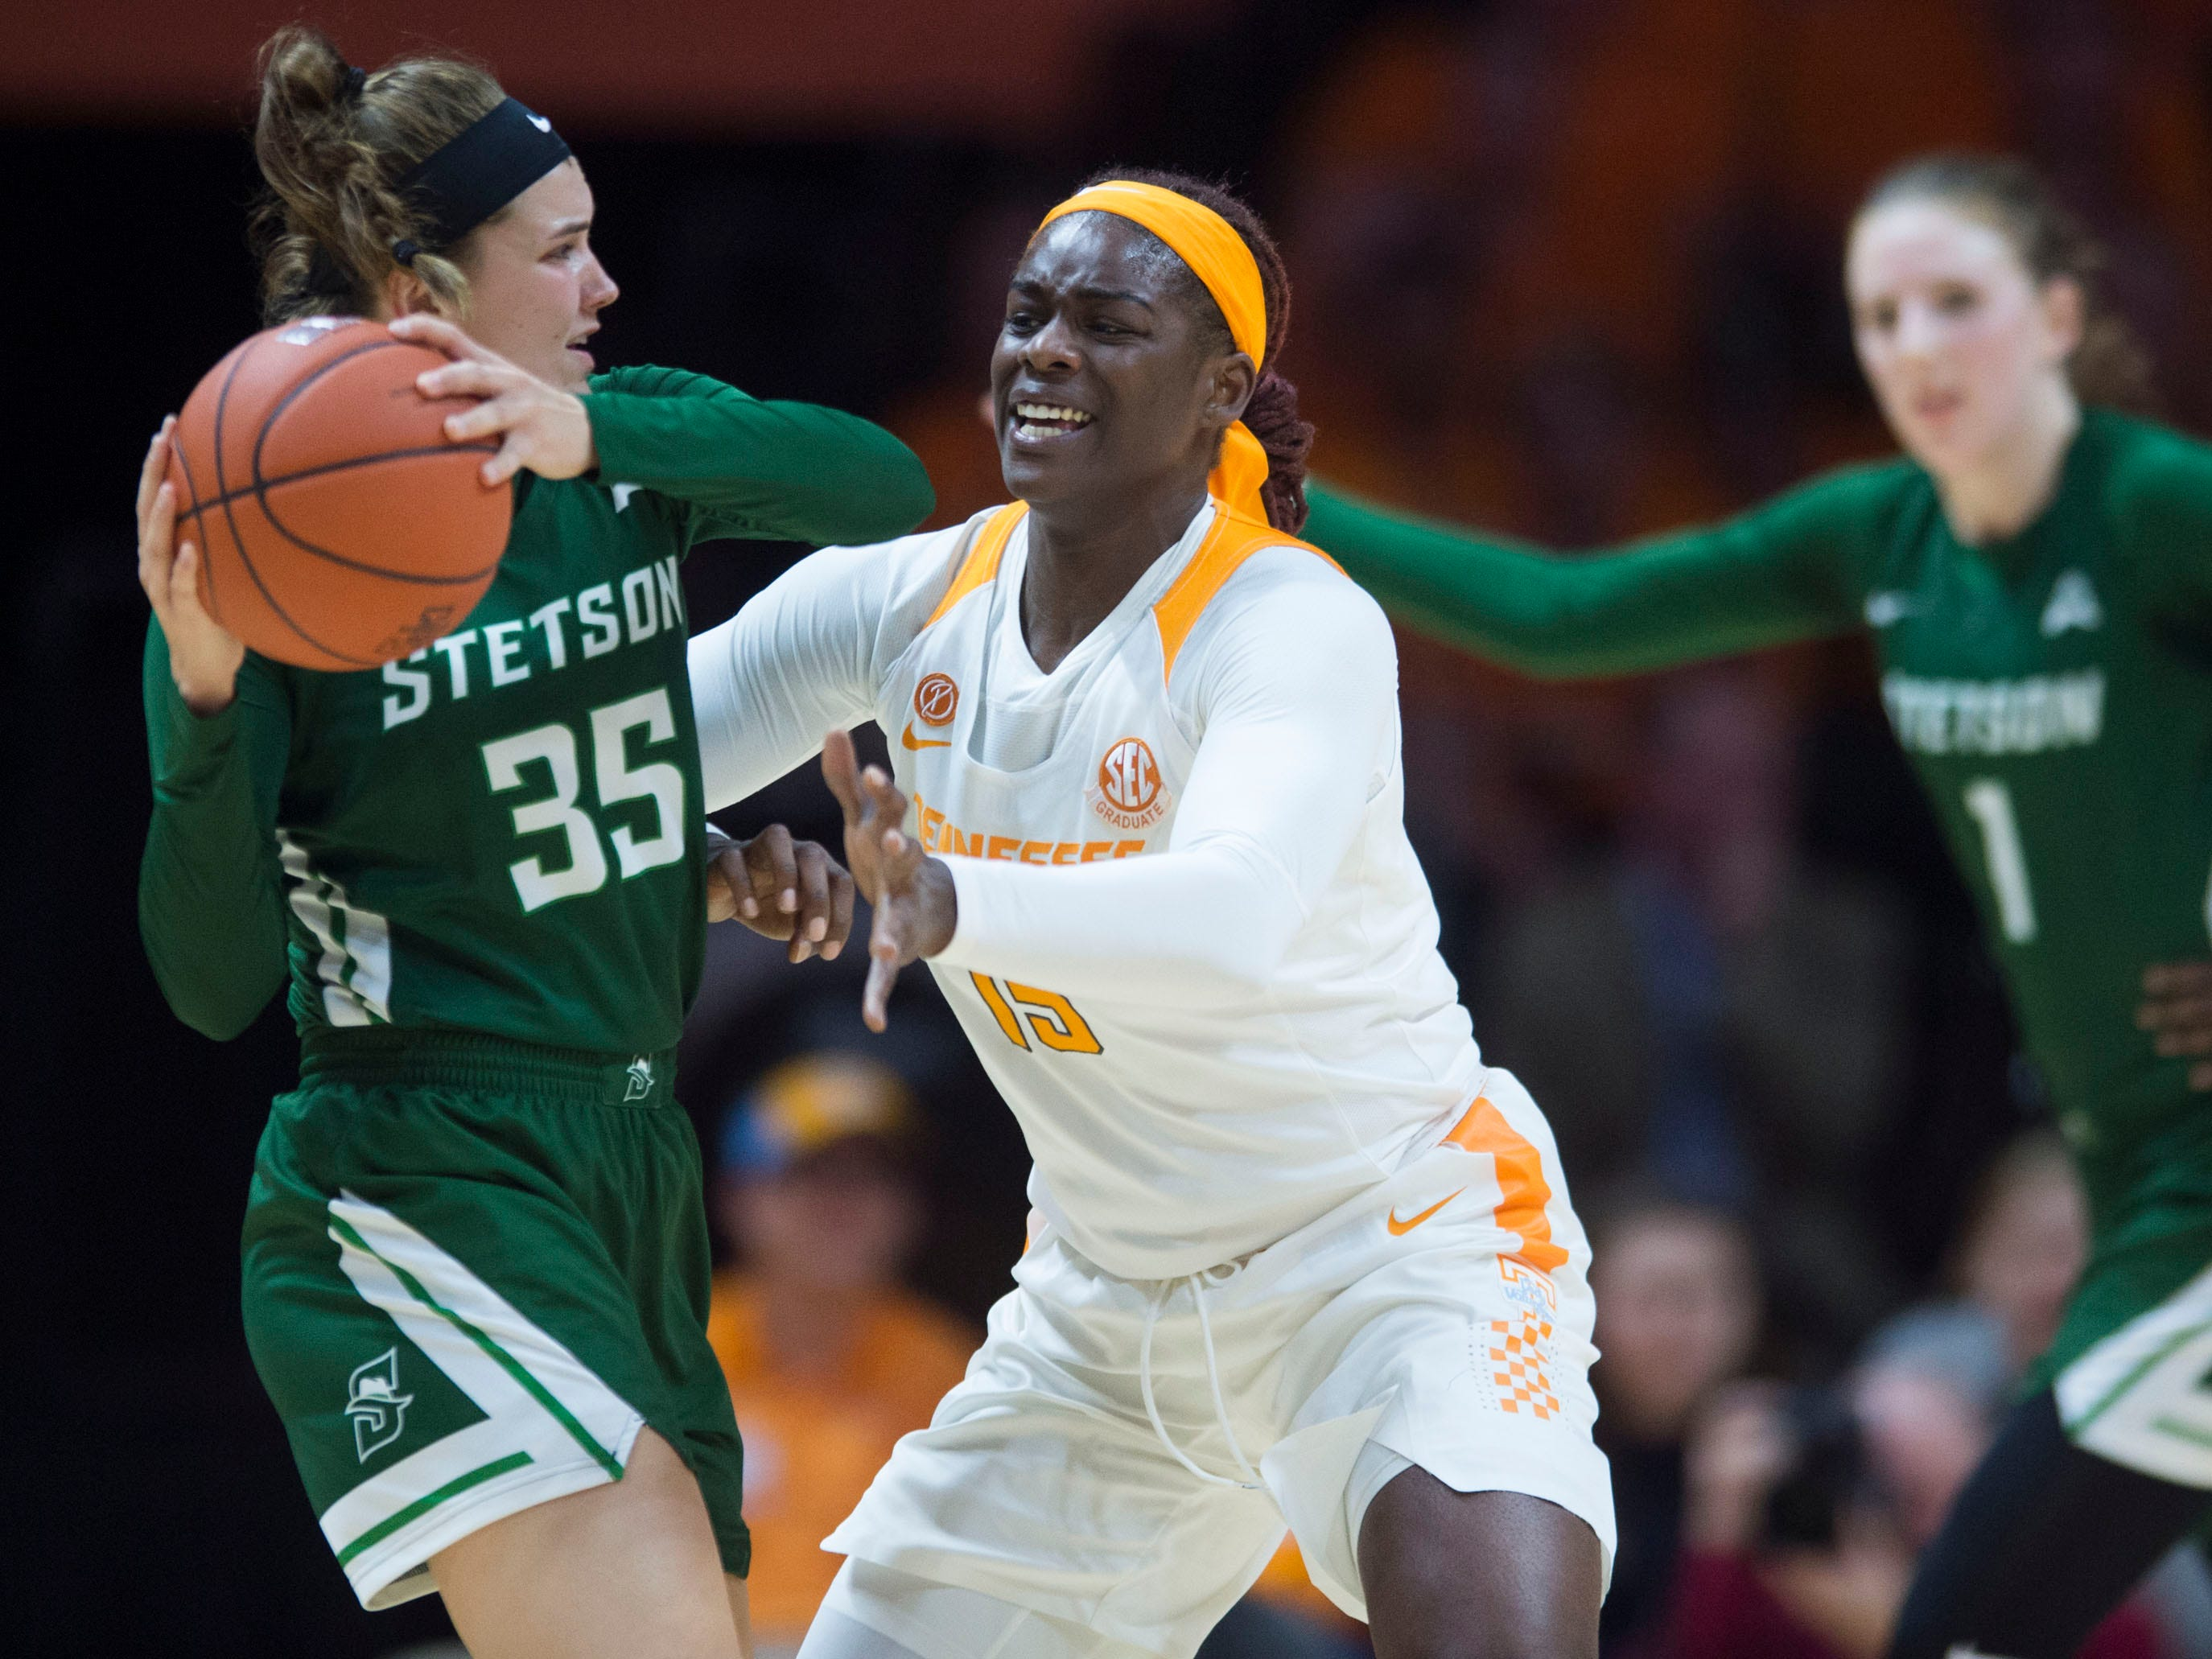 Tennessee's Cheridene Green (15) defends Stetson's Kendall Lentz (35) on Wednesday, December 5, 2018.